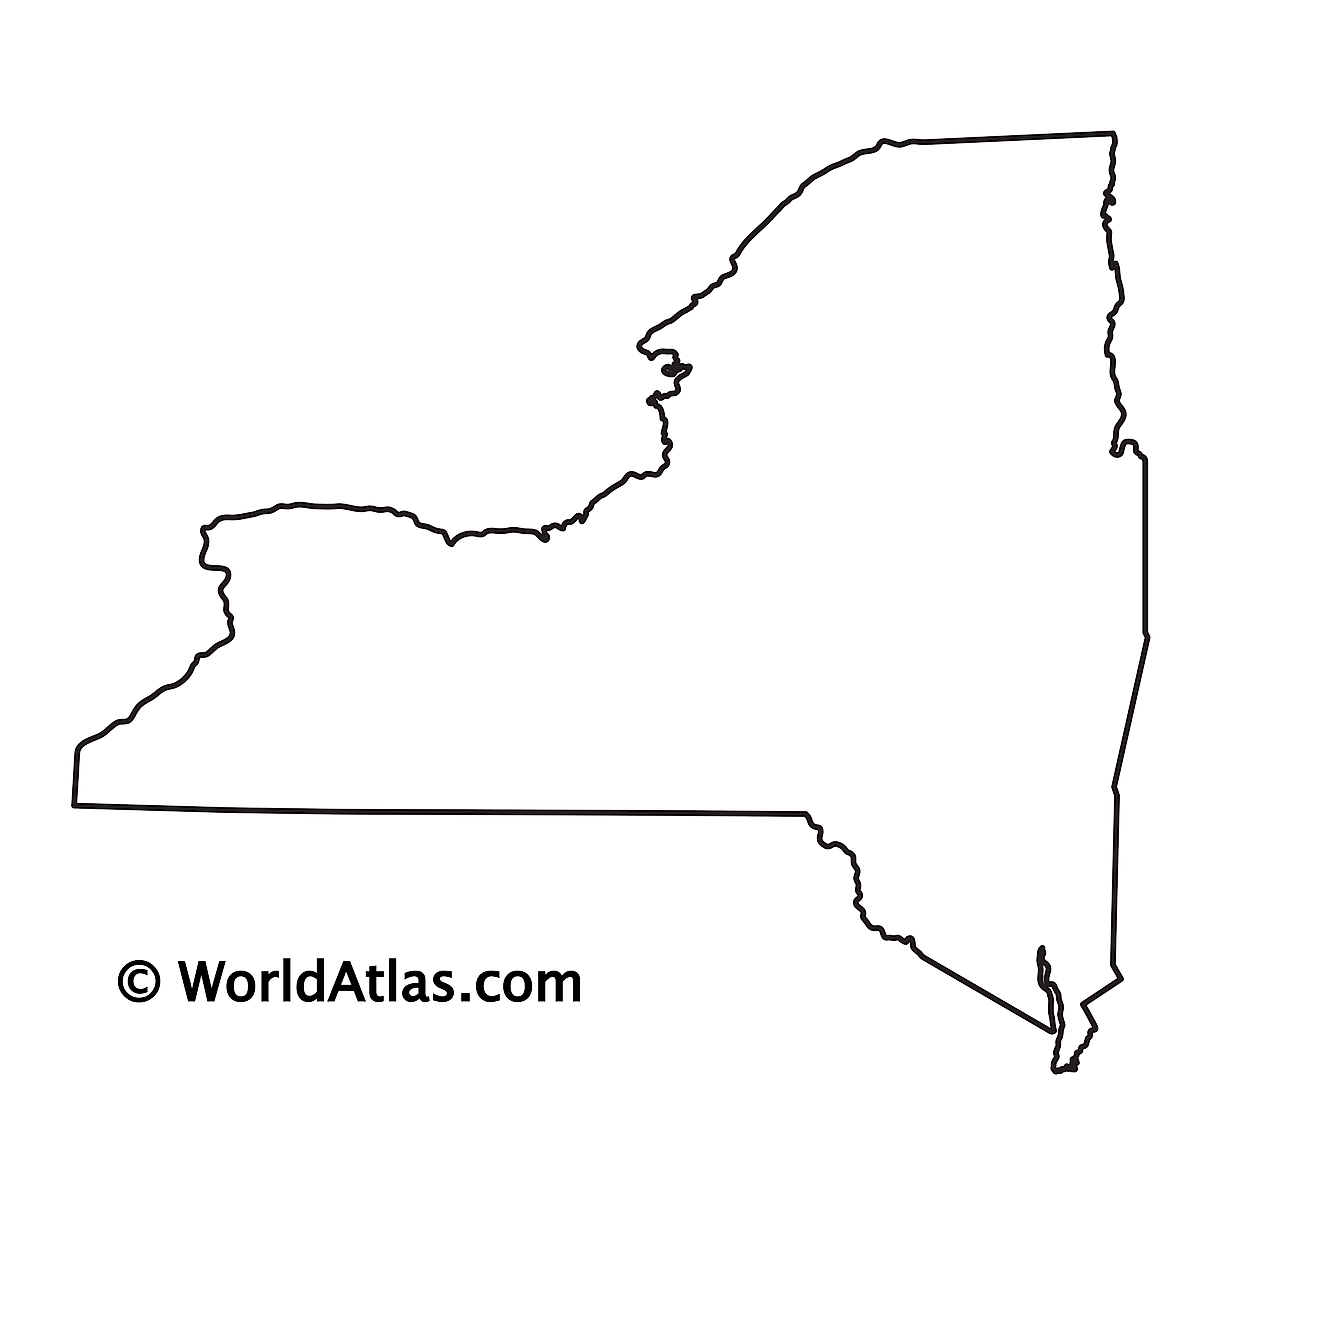 Blank Outline Map of New York